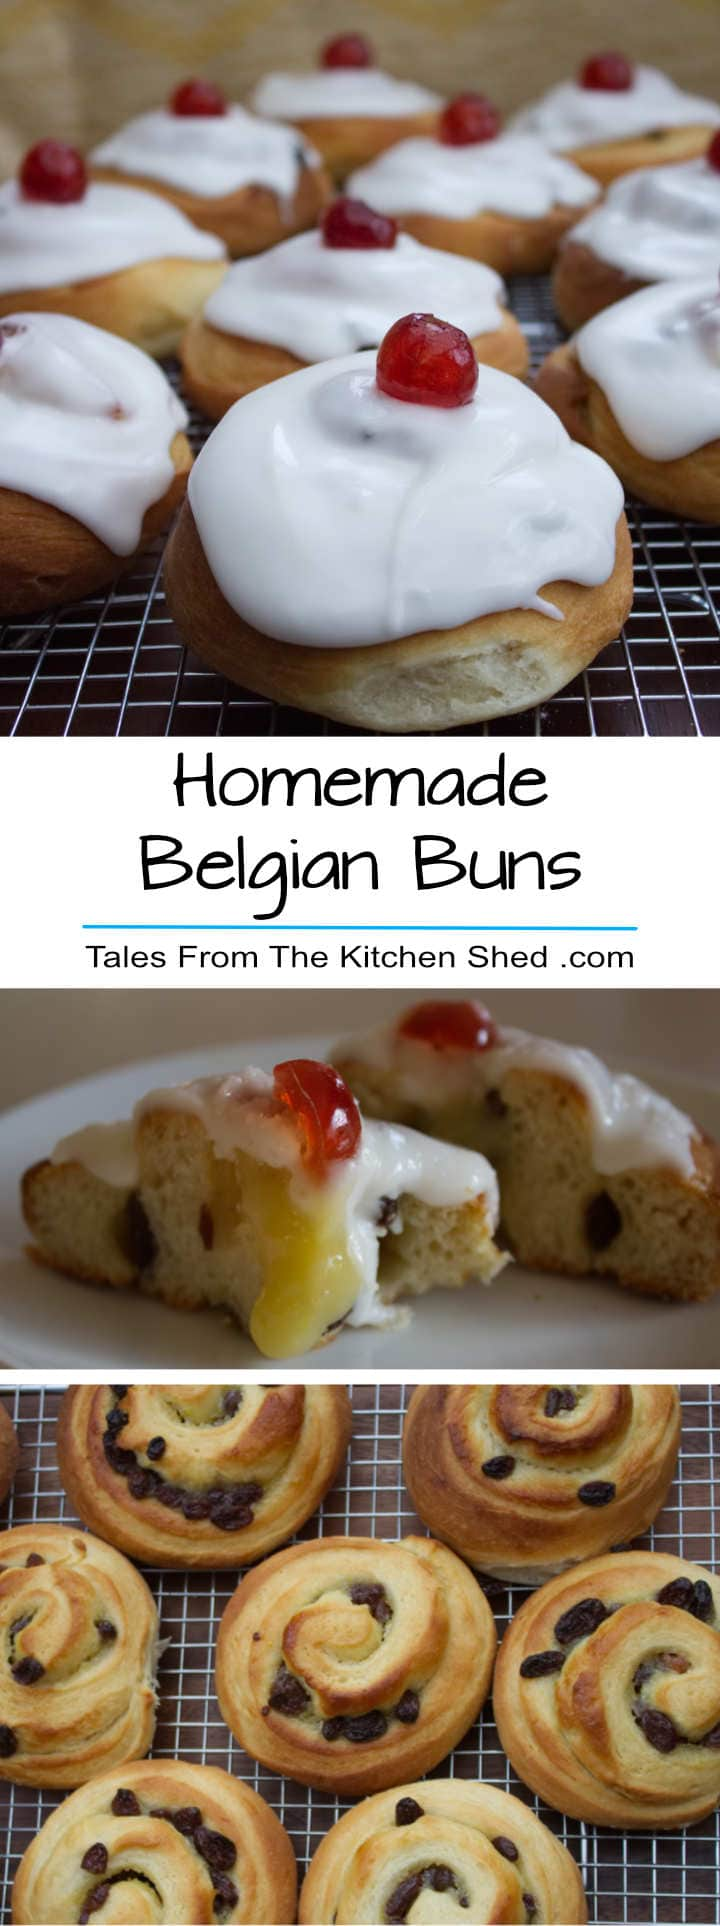 A set of three photo images - starting with a close up of freshly iced Belgian Buns on a cooling rack. Second image is of a split bun revealing the lemon curd filling. Last image is of freshly baked buns cooling on a rack.